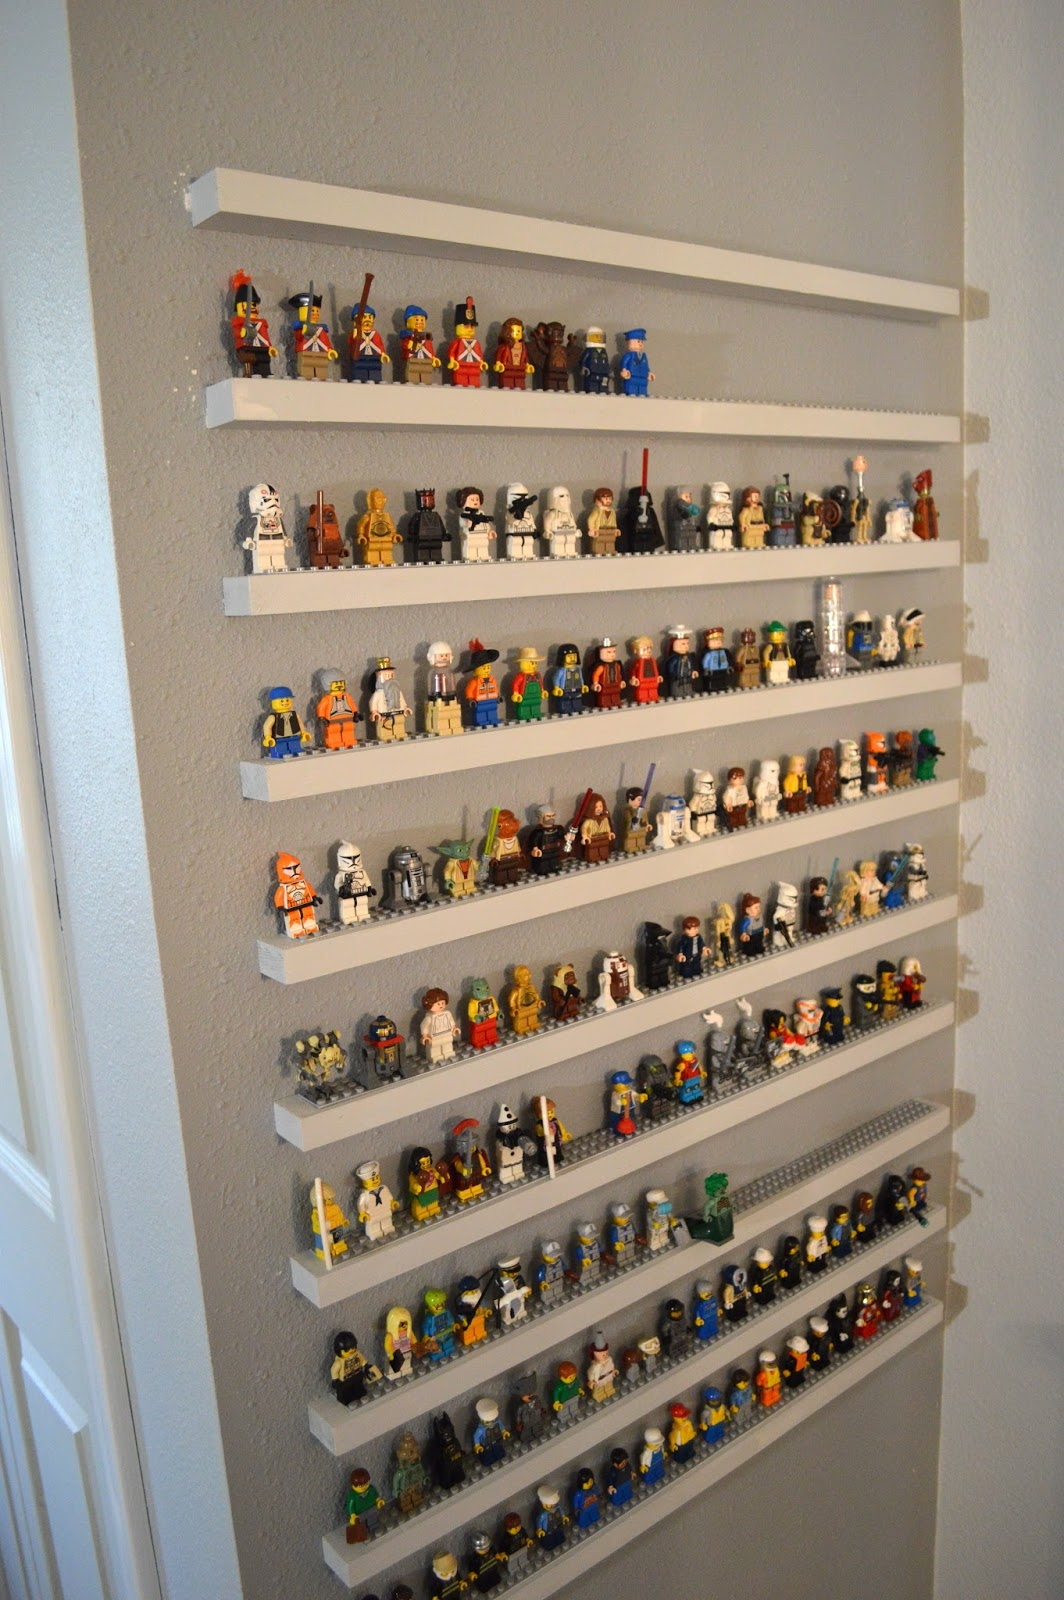 Jedi craft girl diy lego minifigure storage shelves tutorial for Diy wall storage